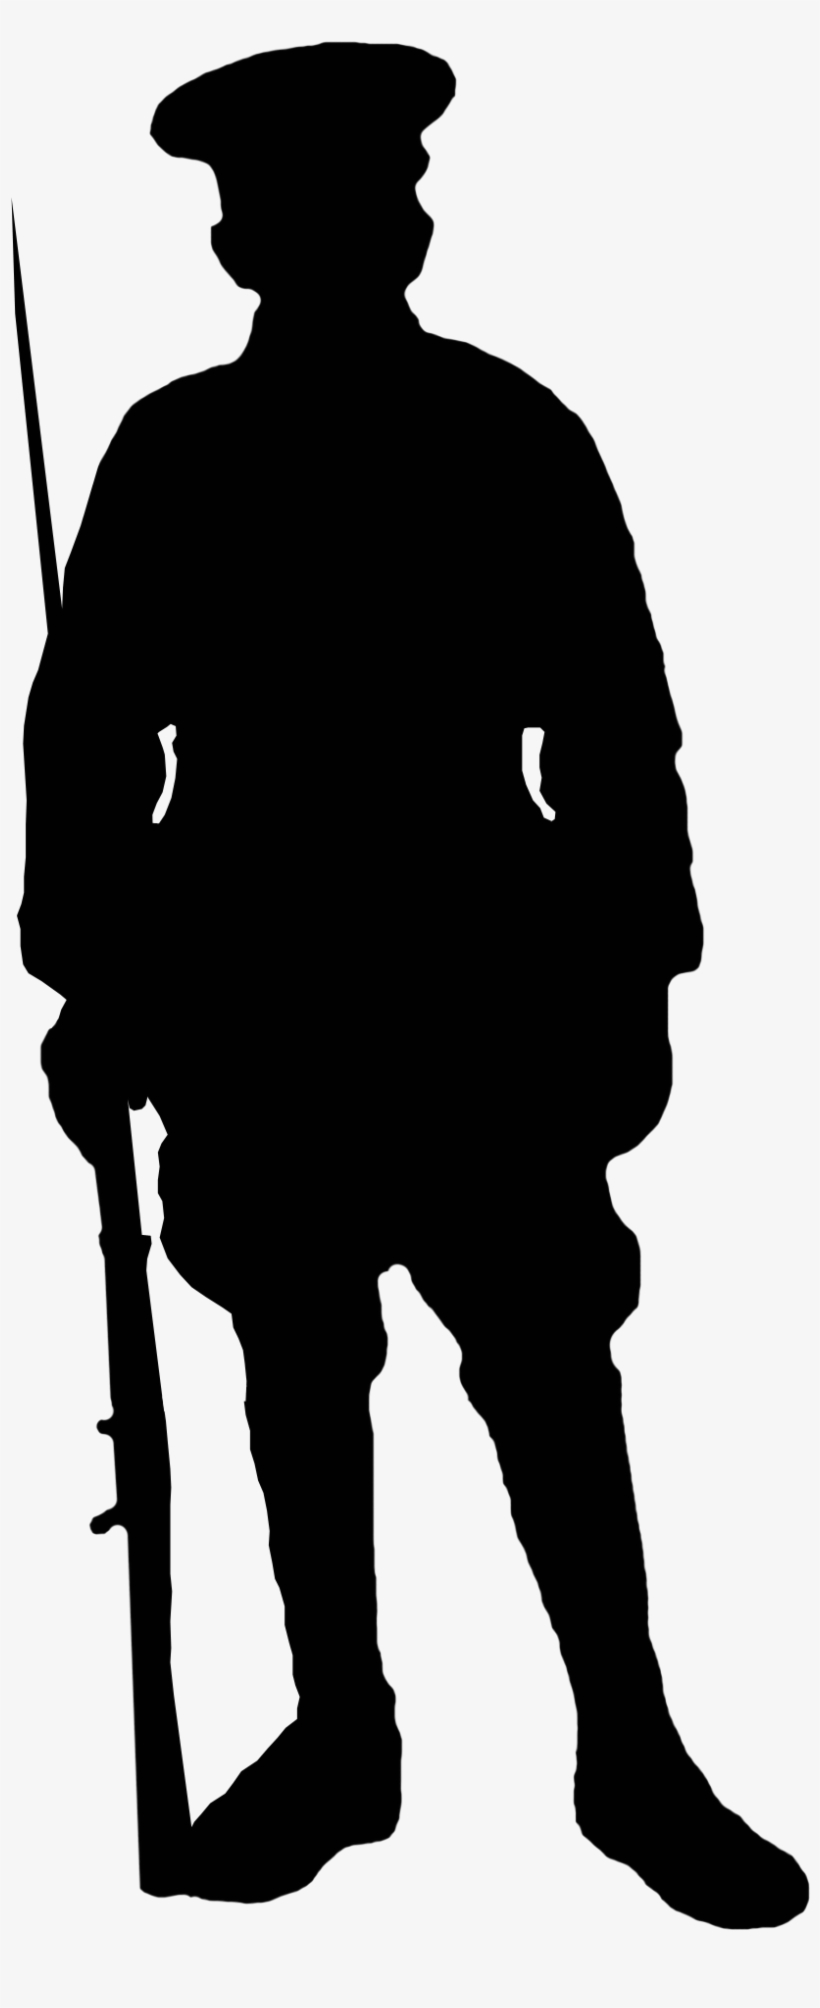 soldier silhouette silhouette 279799 1280 first world war soldier silhouette soldier